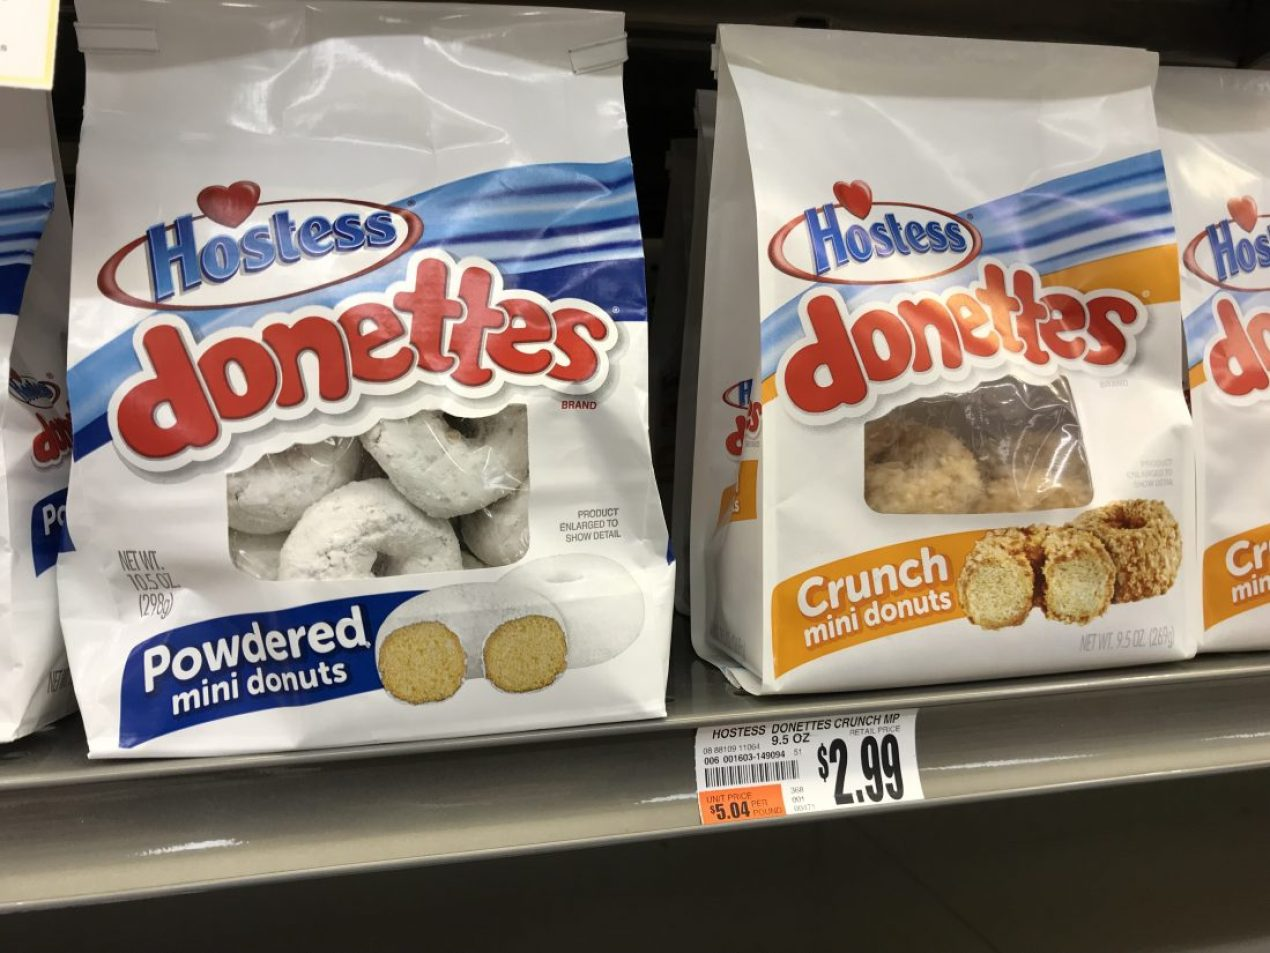 Hoestess Donettes At Tops Markets